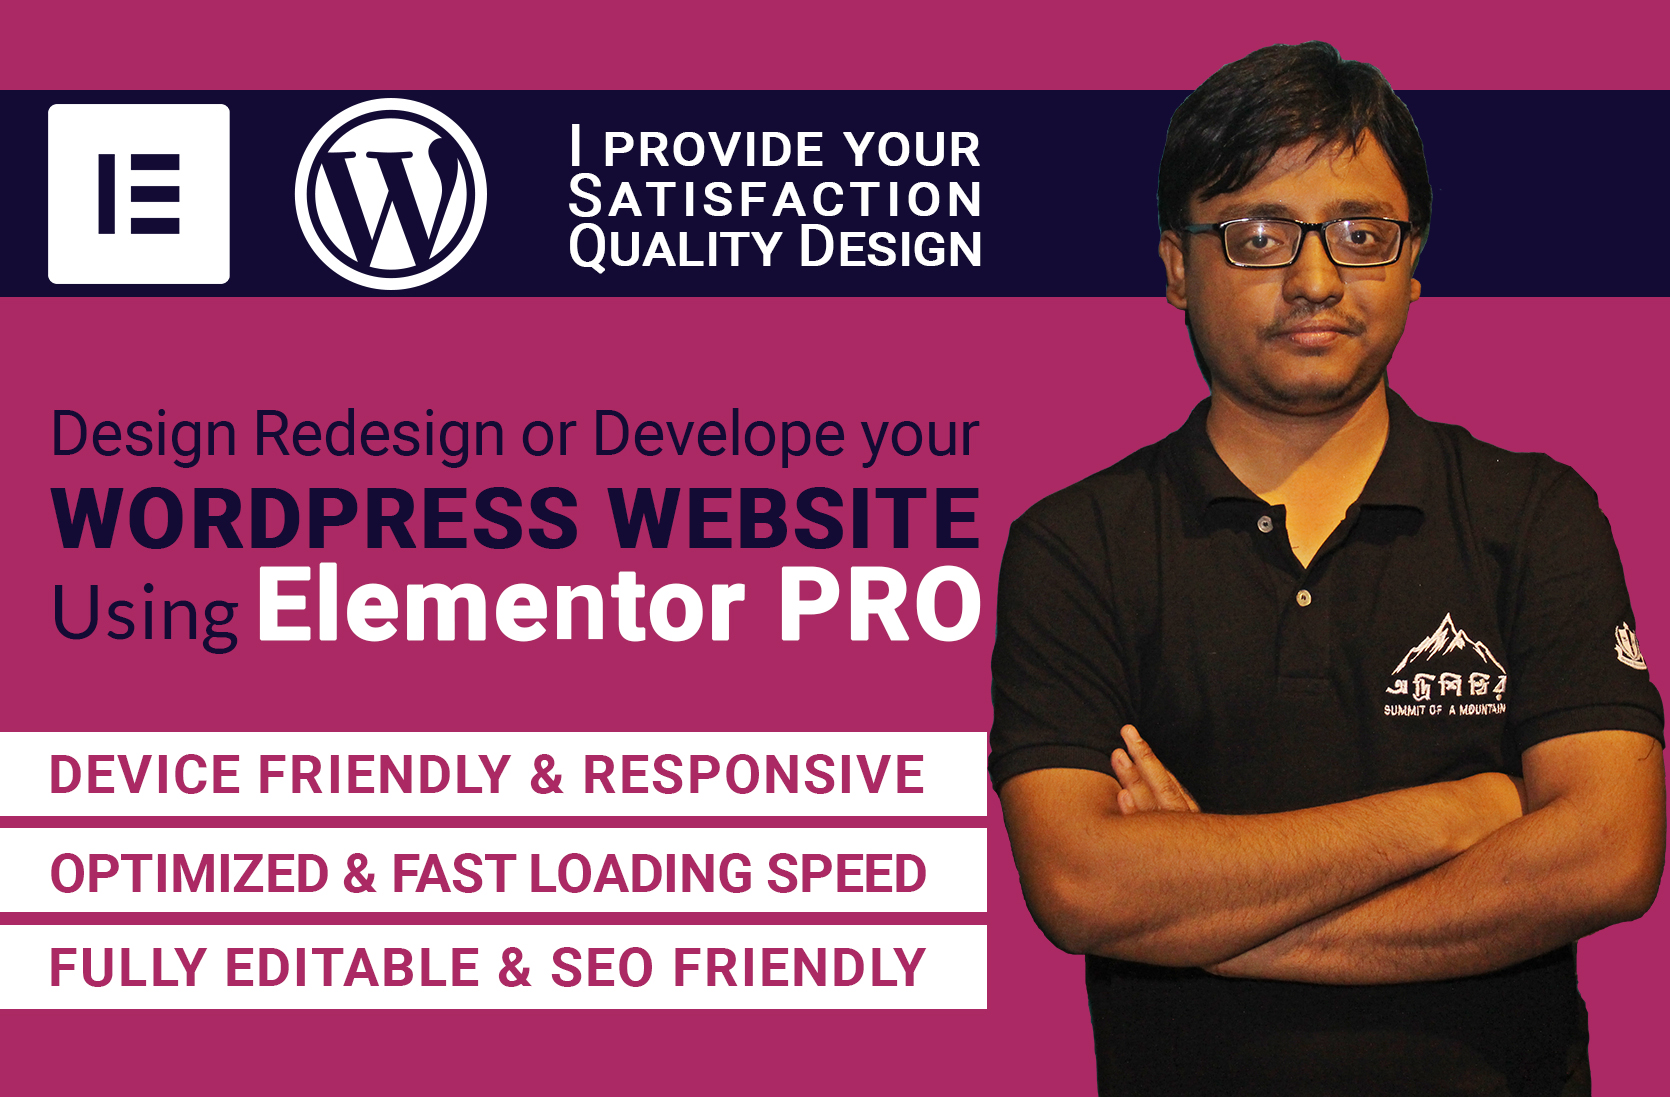 I will design redesign or develop your wordpress website using elementor pro